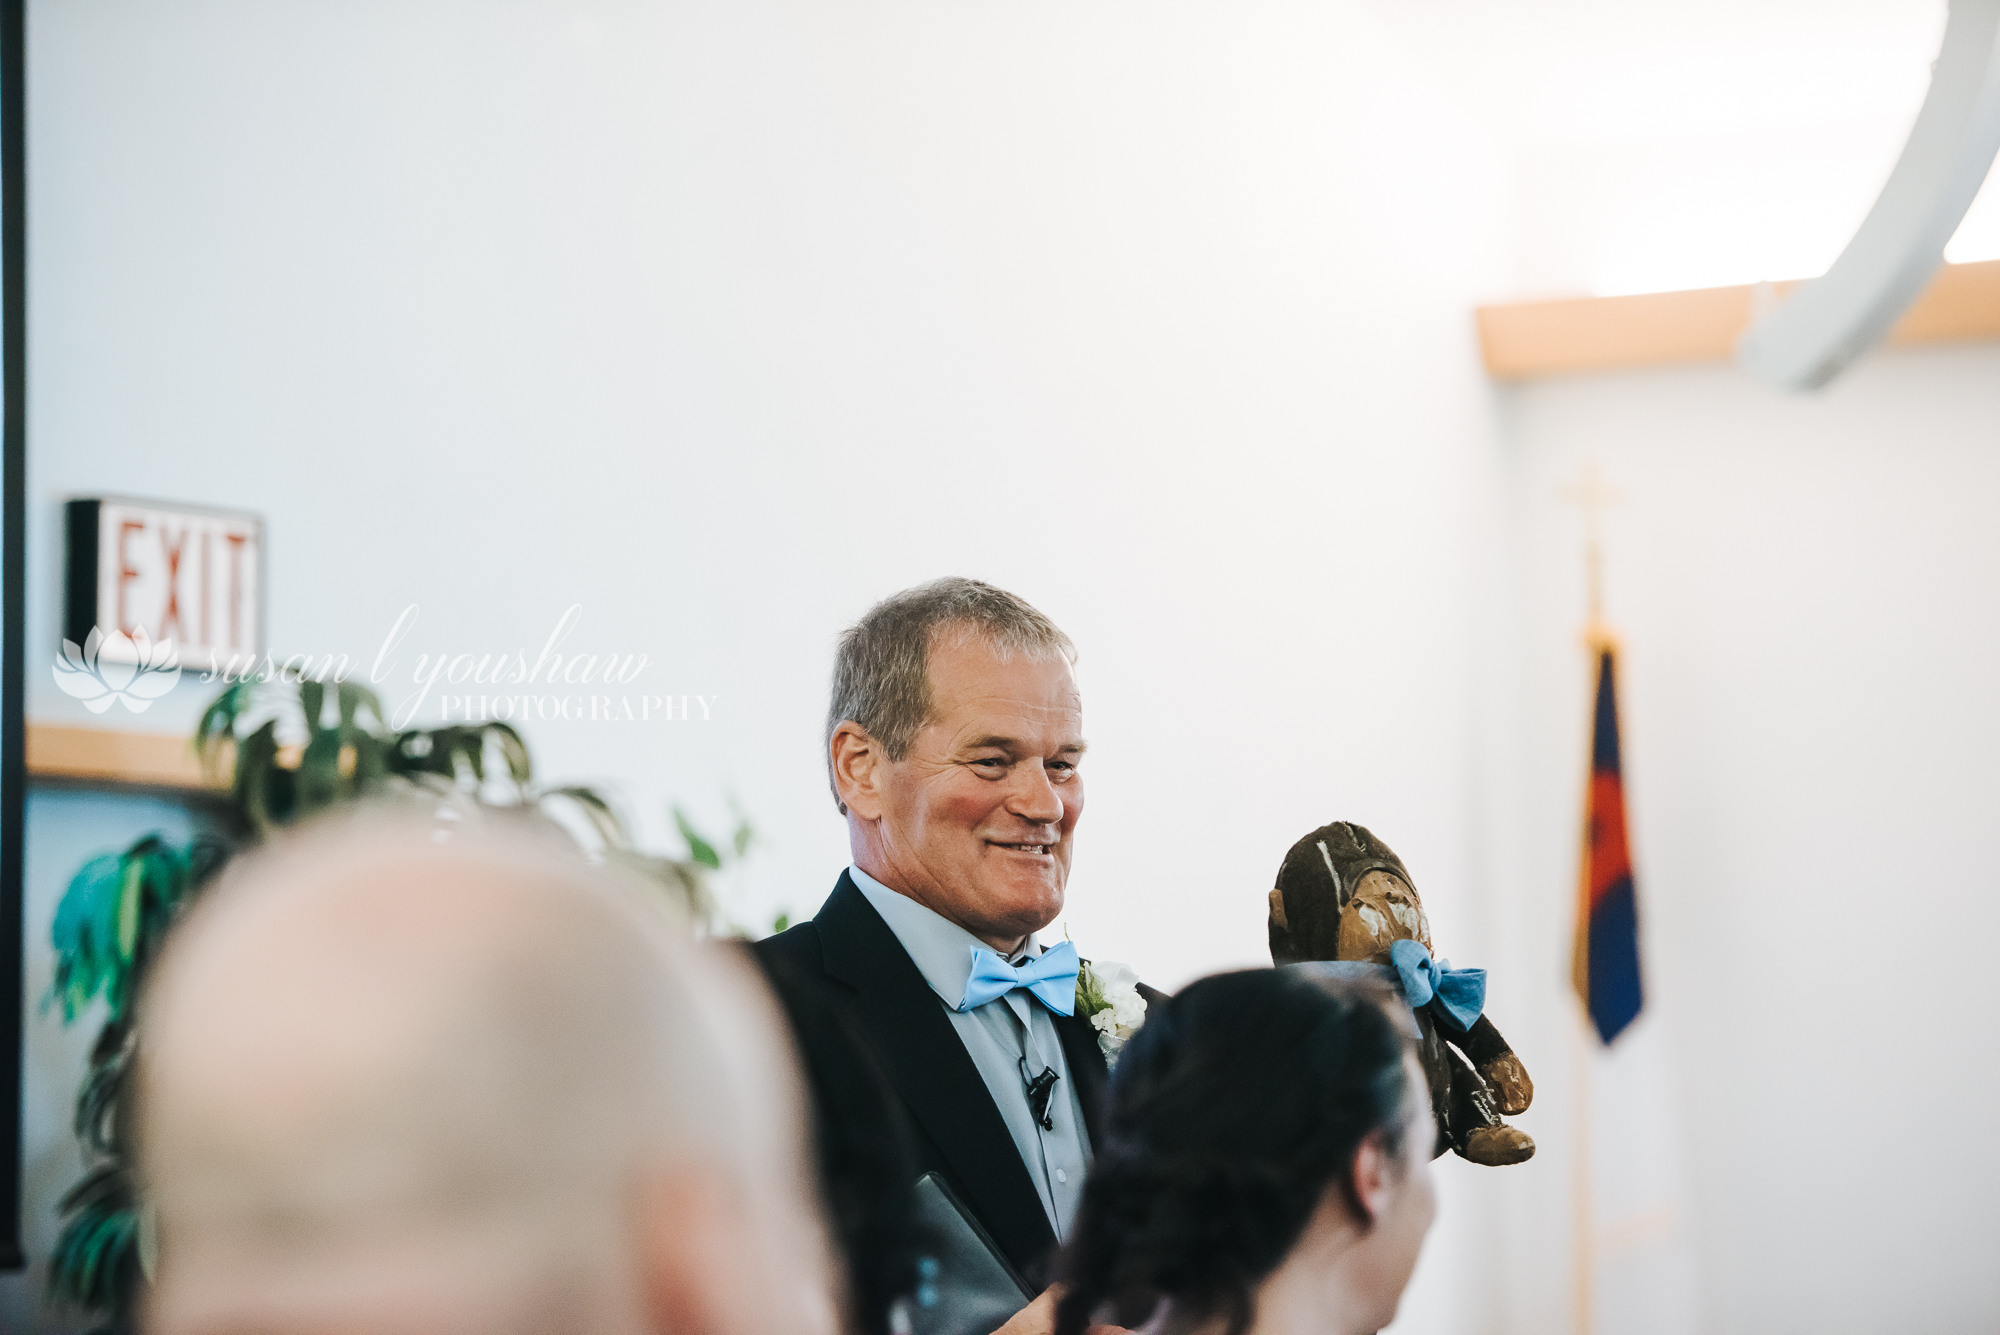 Katelyn and Wes Wedding Photos 07-13-2019 SLY Photography-60.jpg